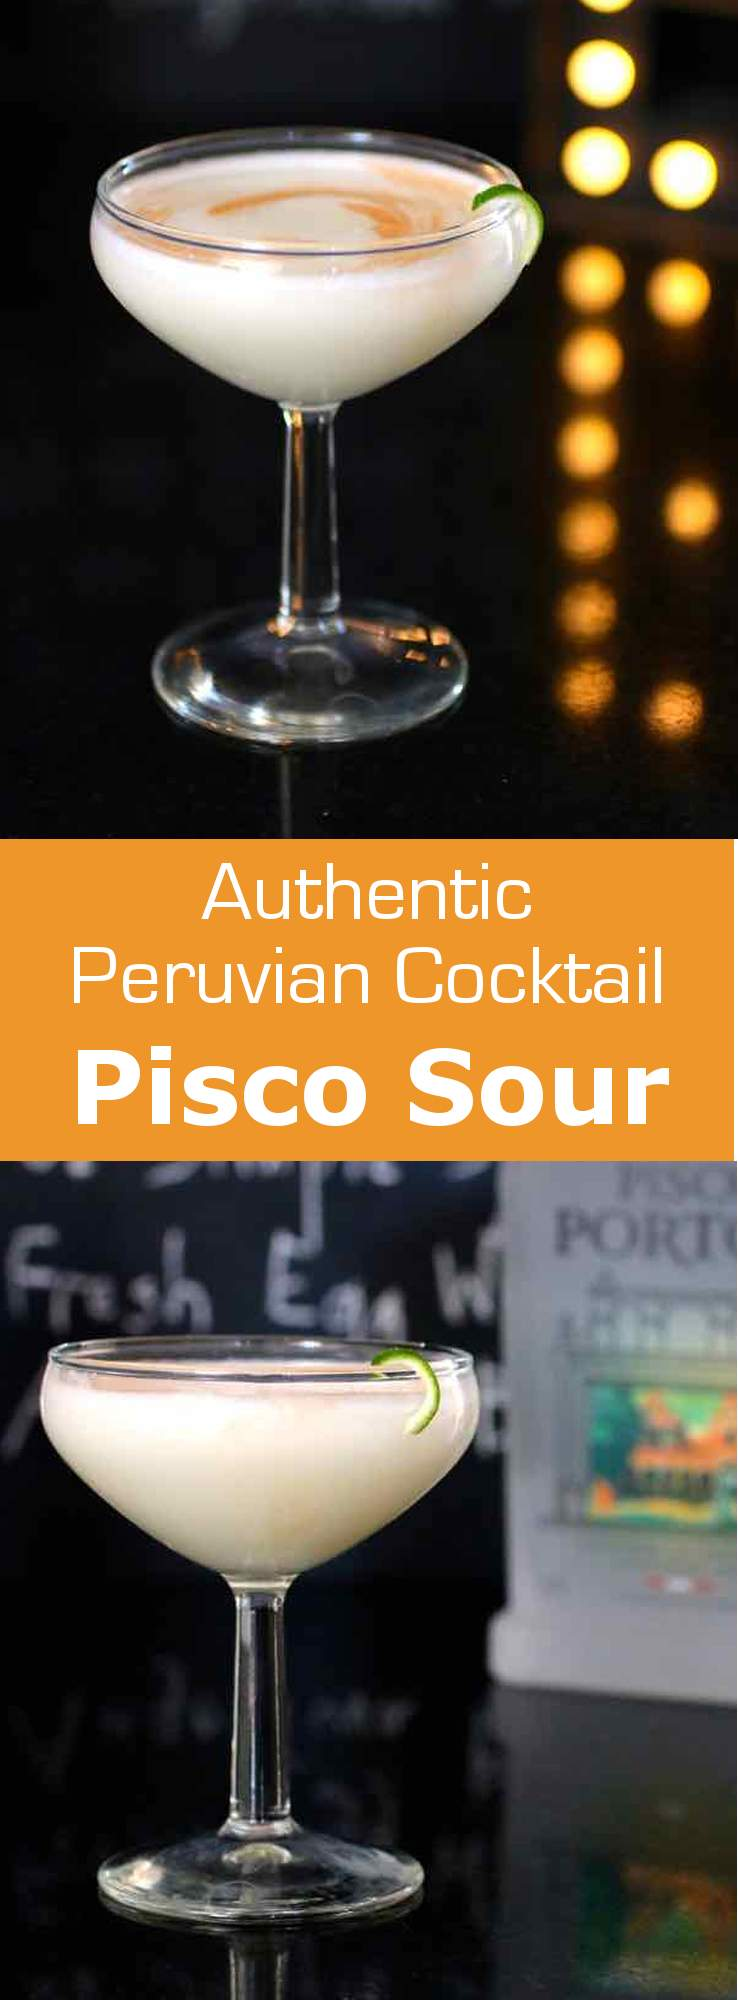 Pisco sour is a traditional Peruvian cocktail based on pisco, lime juice, syrup that is topped with a frothy egg white foam and Angostura bitters. #southamerica #latinamerica #cocktail #peru